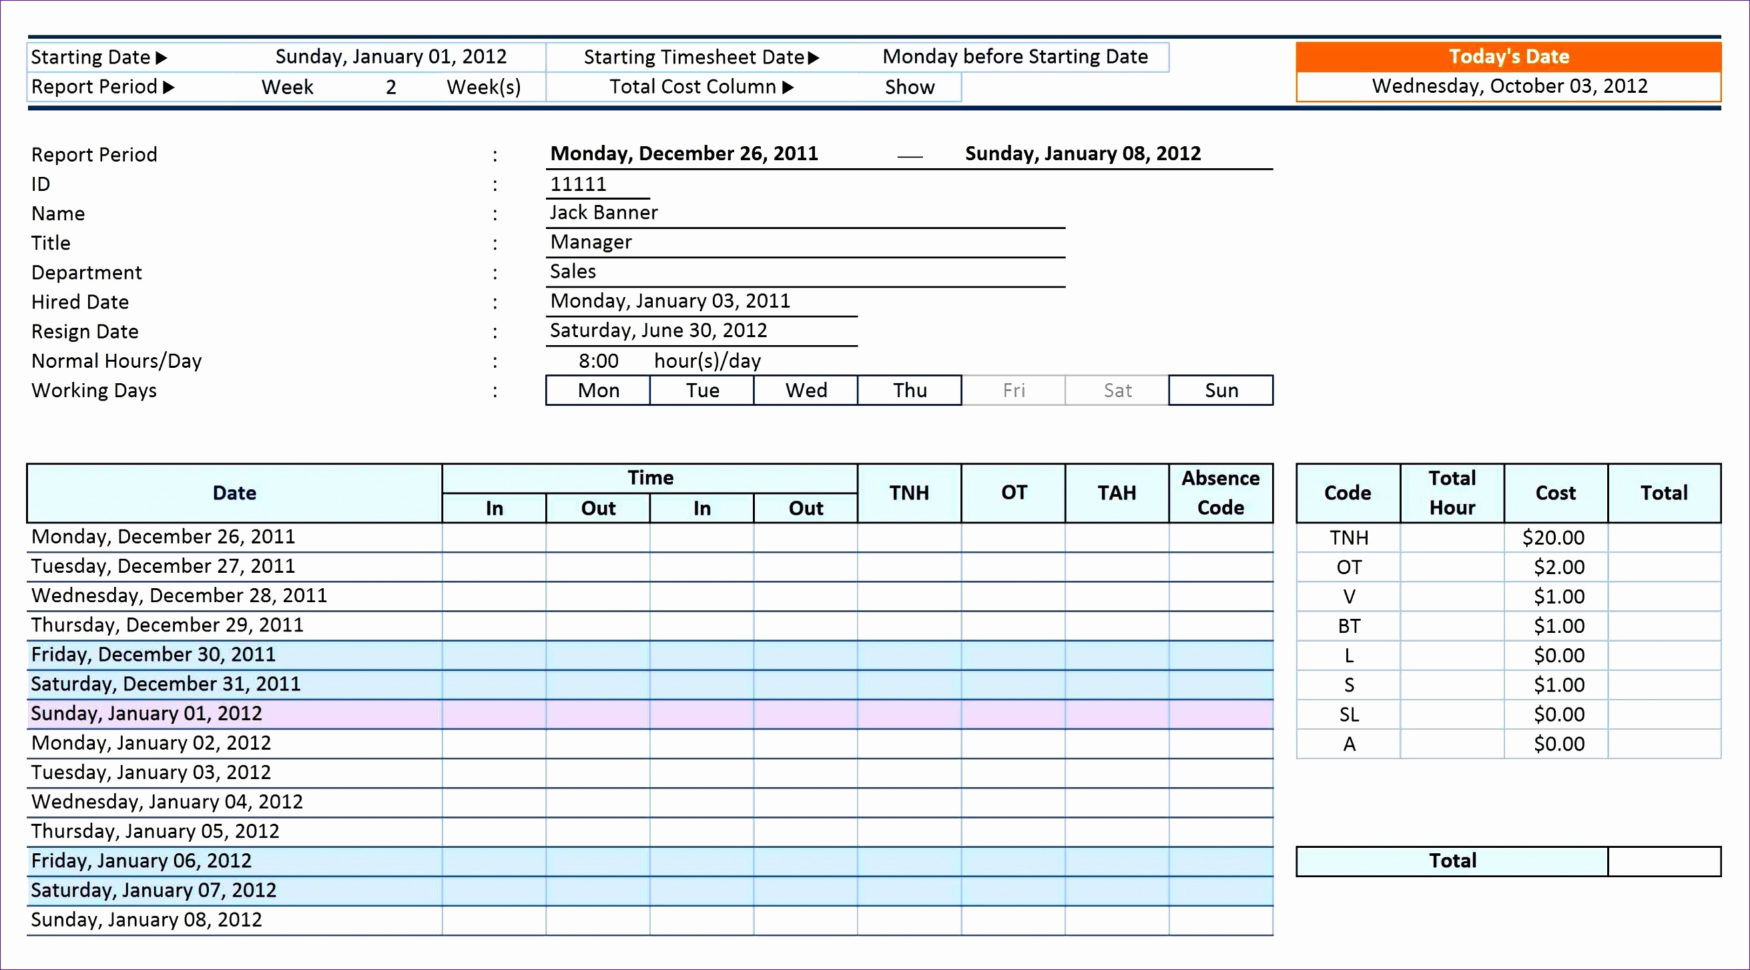 Microsoft Excel Spreadsheet Templates Inspirational Contract Intended For Contract Management Excel Spreadsheet